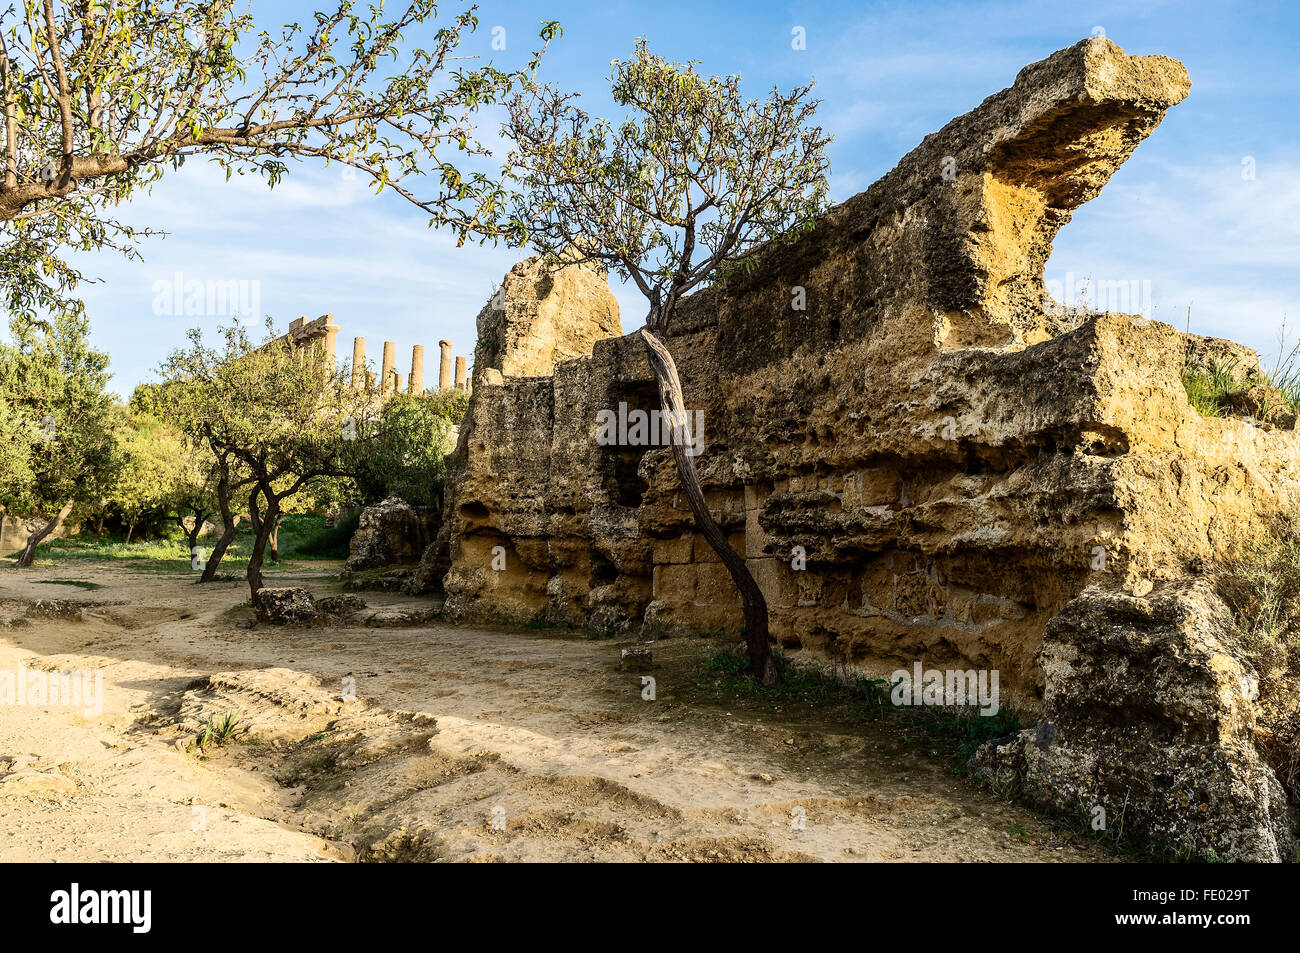 Temple in Agrigento, ancient Greek city of Akragas, Sicily, Italy Temple of Concordia in Agrigento, ancient Greek - Stock Image